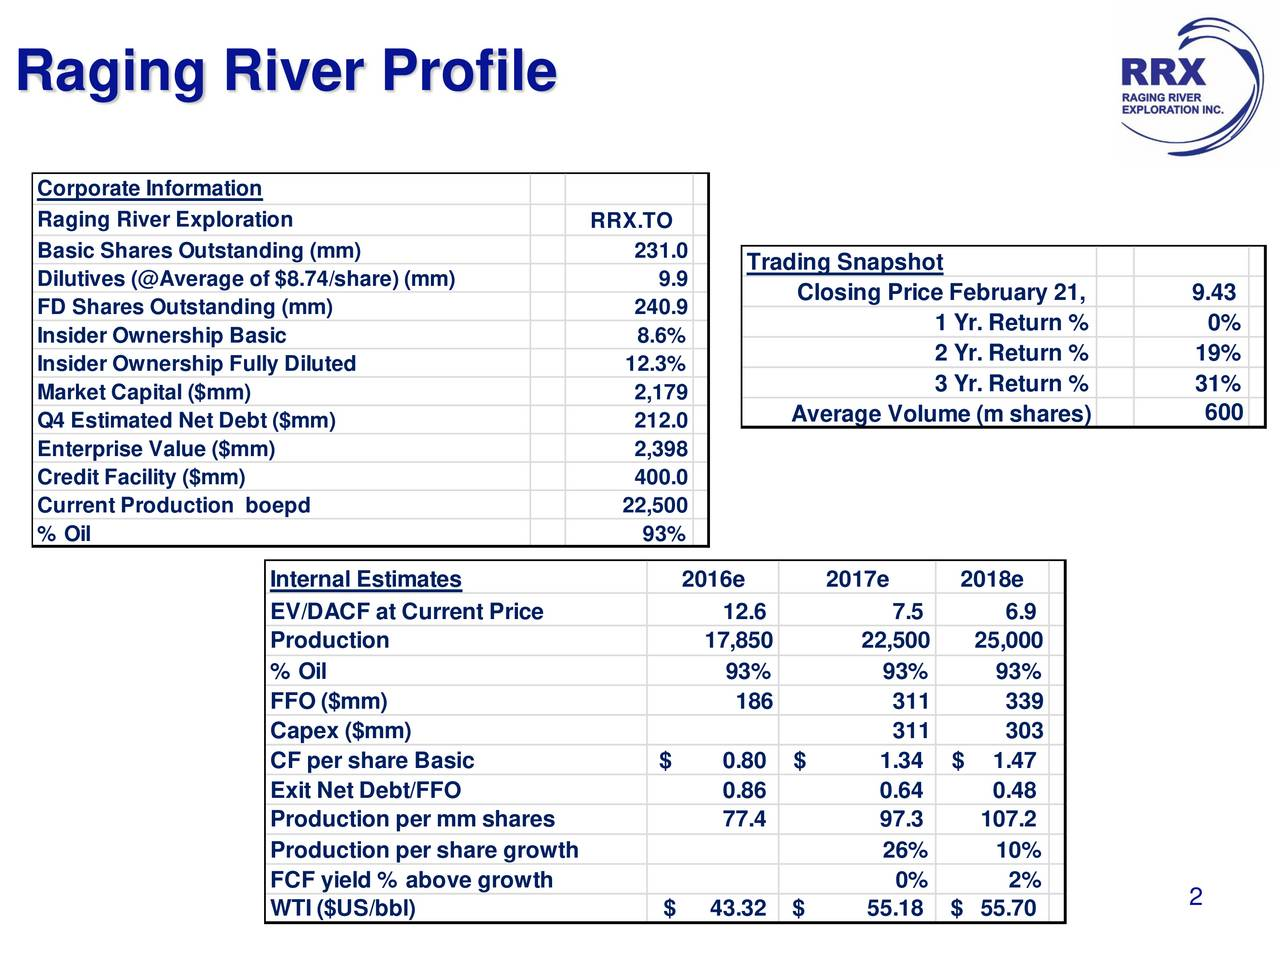 Corporate Information Raging River Exploration RRX.TO Basic Shares Outstanding (mm) 231.0 Trading Snapshot Dilutives (@Average of $8.74/share) (mm) 9.9 Closing Price February 21, 9.43 FD Shares Outstanding (mm) 240.9 Insider Ownership Basic 8.6% 1 Yr. Return % 0% 2 Yr. Return % 19% Insider Ownership Fully Diluted 12.3% Market Capital ($mm) 2,179 3 Yr. Return % 31% Q4 Estimated Net Debt ($mm) 212.0 Average Volume (m shares) 600 Enterprise Value ($mm) 2,398 Credit Facility ($mm) 400.0 Current Production boepd 22,500 % Oil 93% Internal Estimates 2016e 2017e 2018e EV/DACF at Current Price 12.6 7.5 6.9 Production 17,850 22,500 25,000 % Oil 93% 93% 93% FFO ($mm) 186 311 339 Capex ($mm) 311 303 CF per share Basic $ 0.80 $ 1.34 $ 1.47 Exit Net Debt/FFO 0.86 0.64 0.48 Production per mm shares 77.4 97.3 107.2 Production per share growth 26% 10% FCF yield % above growth 0% 2% WTI ($US/bbl) $ 43.32 $ 55.18 $ 55.70 2